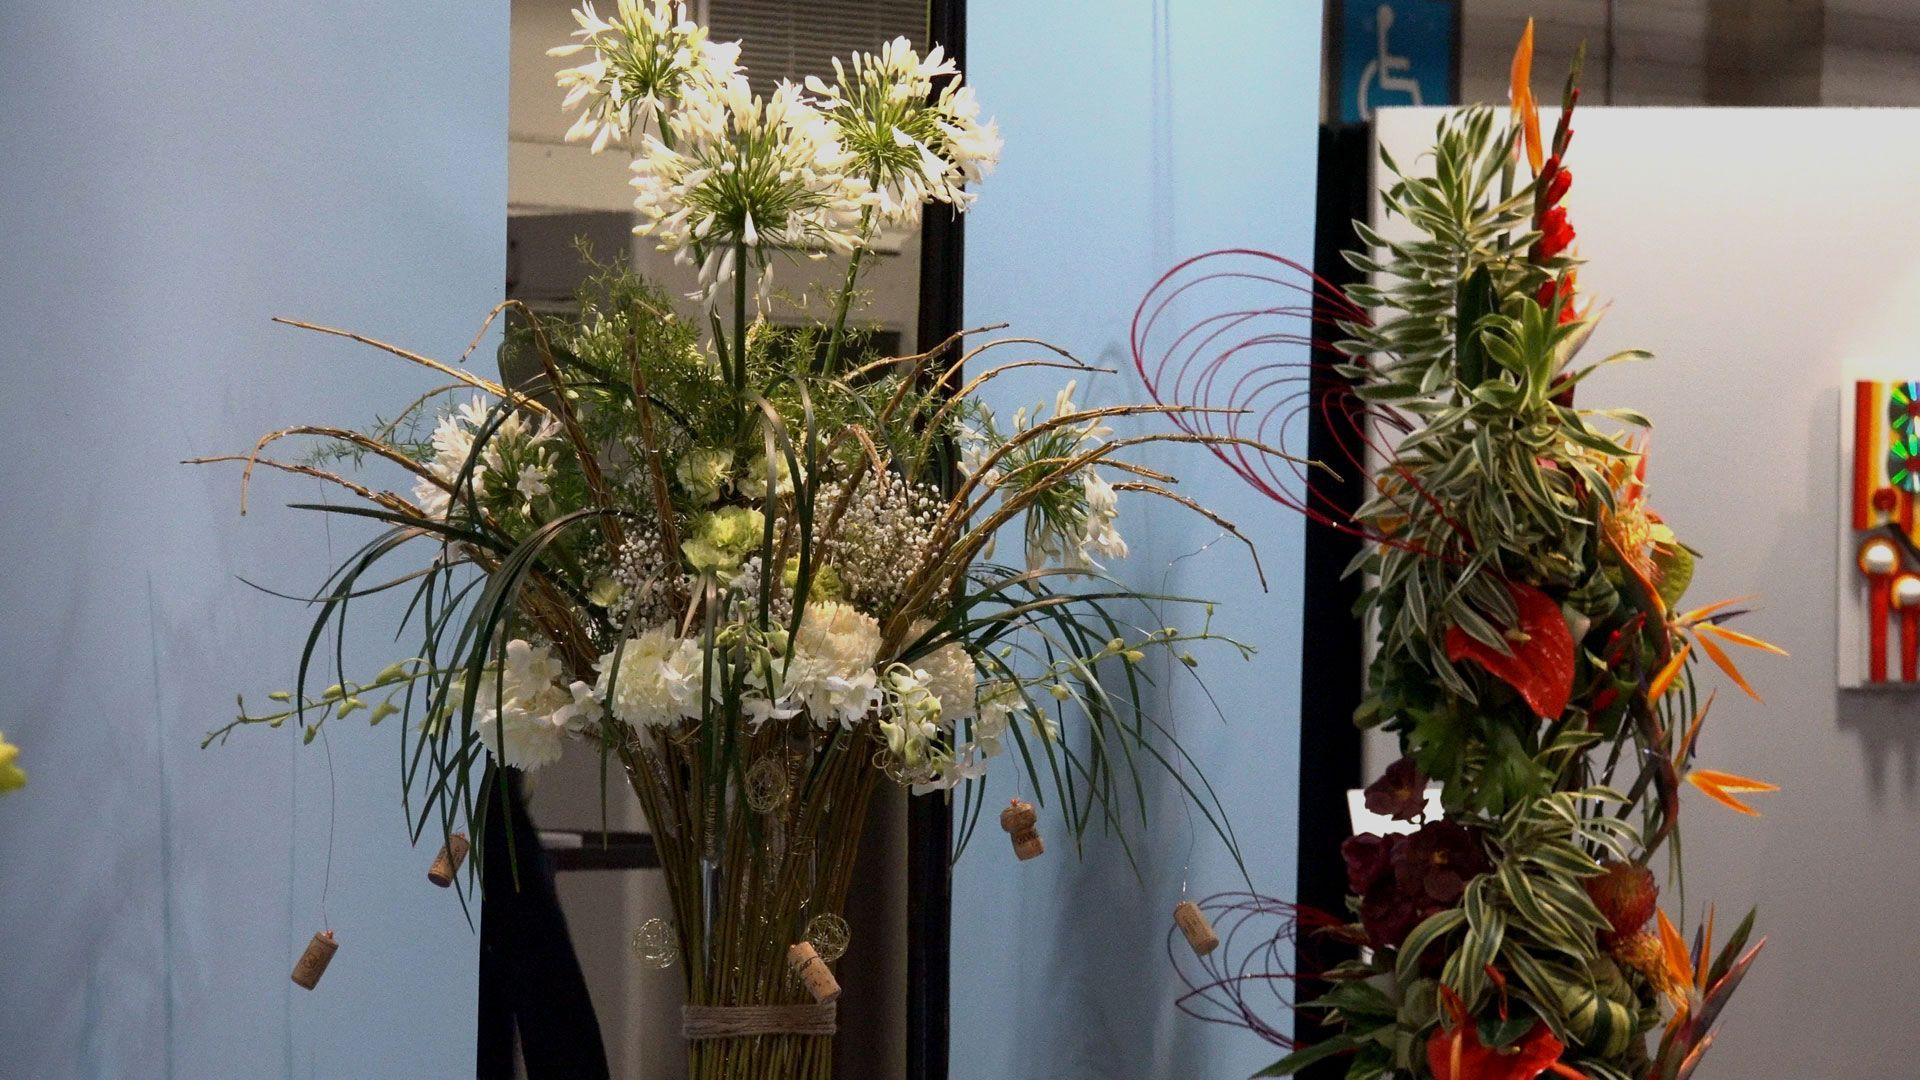 NewCa.com: 2016 Canada Blooms. Toronto Flower Show. International Competition @Canada Blooms. 10 international florists participated in this competition. #canadablooms2016 #canadablooms #flowers #florist #plants  #blossom #bloom #blooms gardening #flowerparty #gardens  #Spring #Bouquet